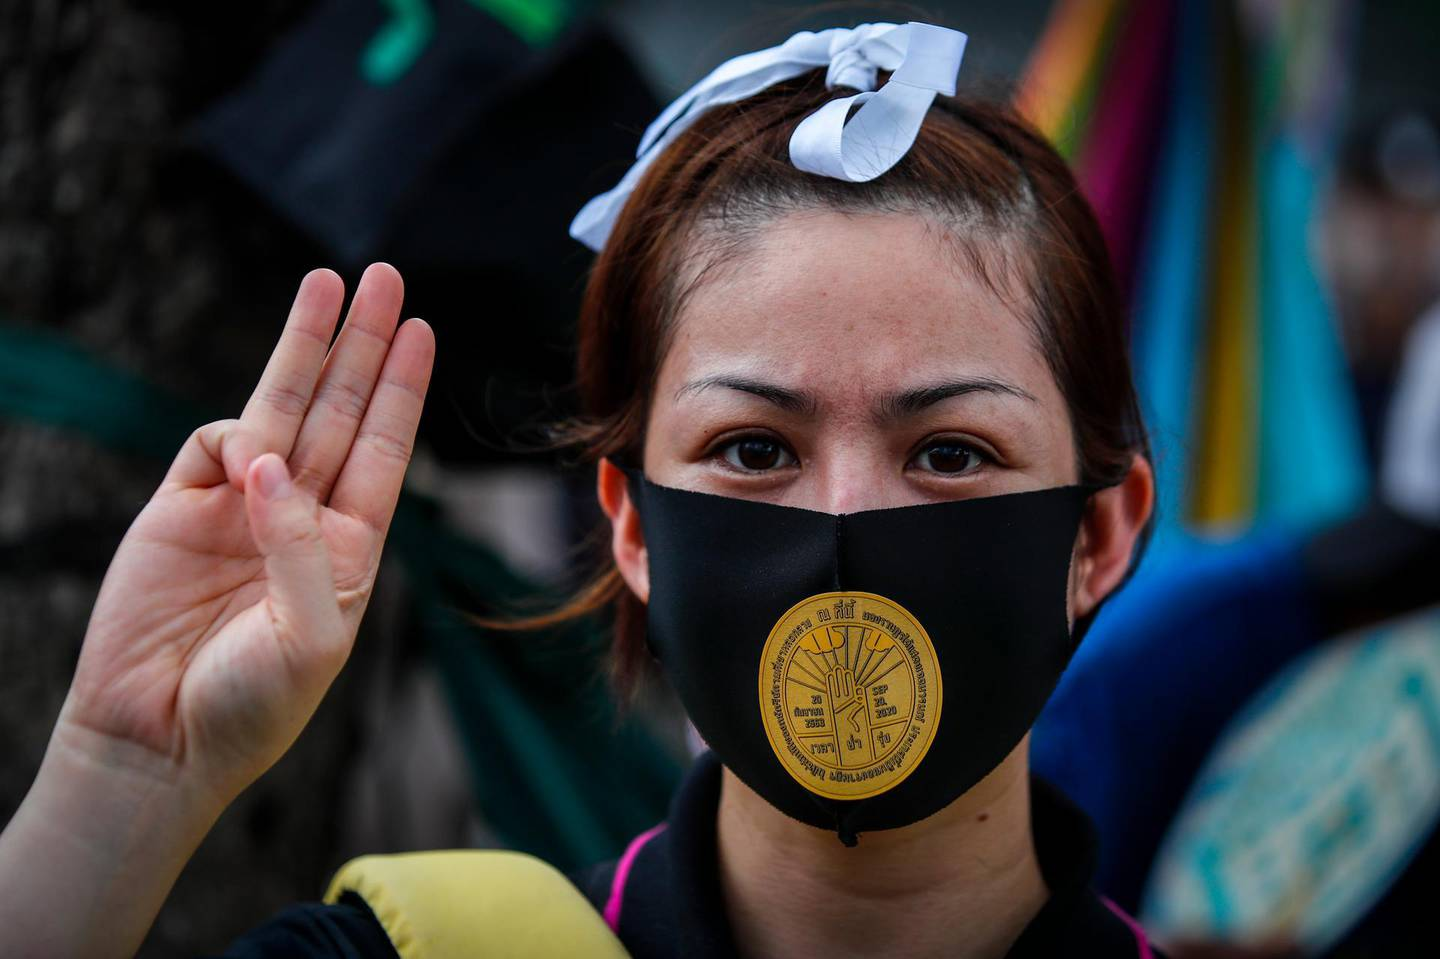 epa08693631 A Thai pro-democracy activist with a sticker of the memorial plaque of the 1932 Siamese Revolution on her mask, attends an anti-government protest outside the parliament in Bangkok, Thailand, 24 September 2020. Hundreds of anti-government protesters gathered outside the parliament to support the amendment of the constitution as the parliament of Thailand holds special sessions from 23 to 24 September 2020 to deliberate the charter amendment proposals and the establishment of a charter drafting group.  EPA/DIEGO AZUBEL